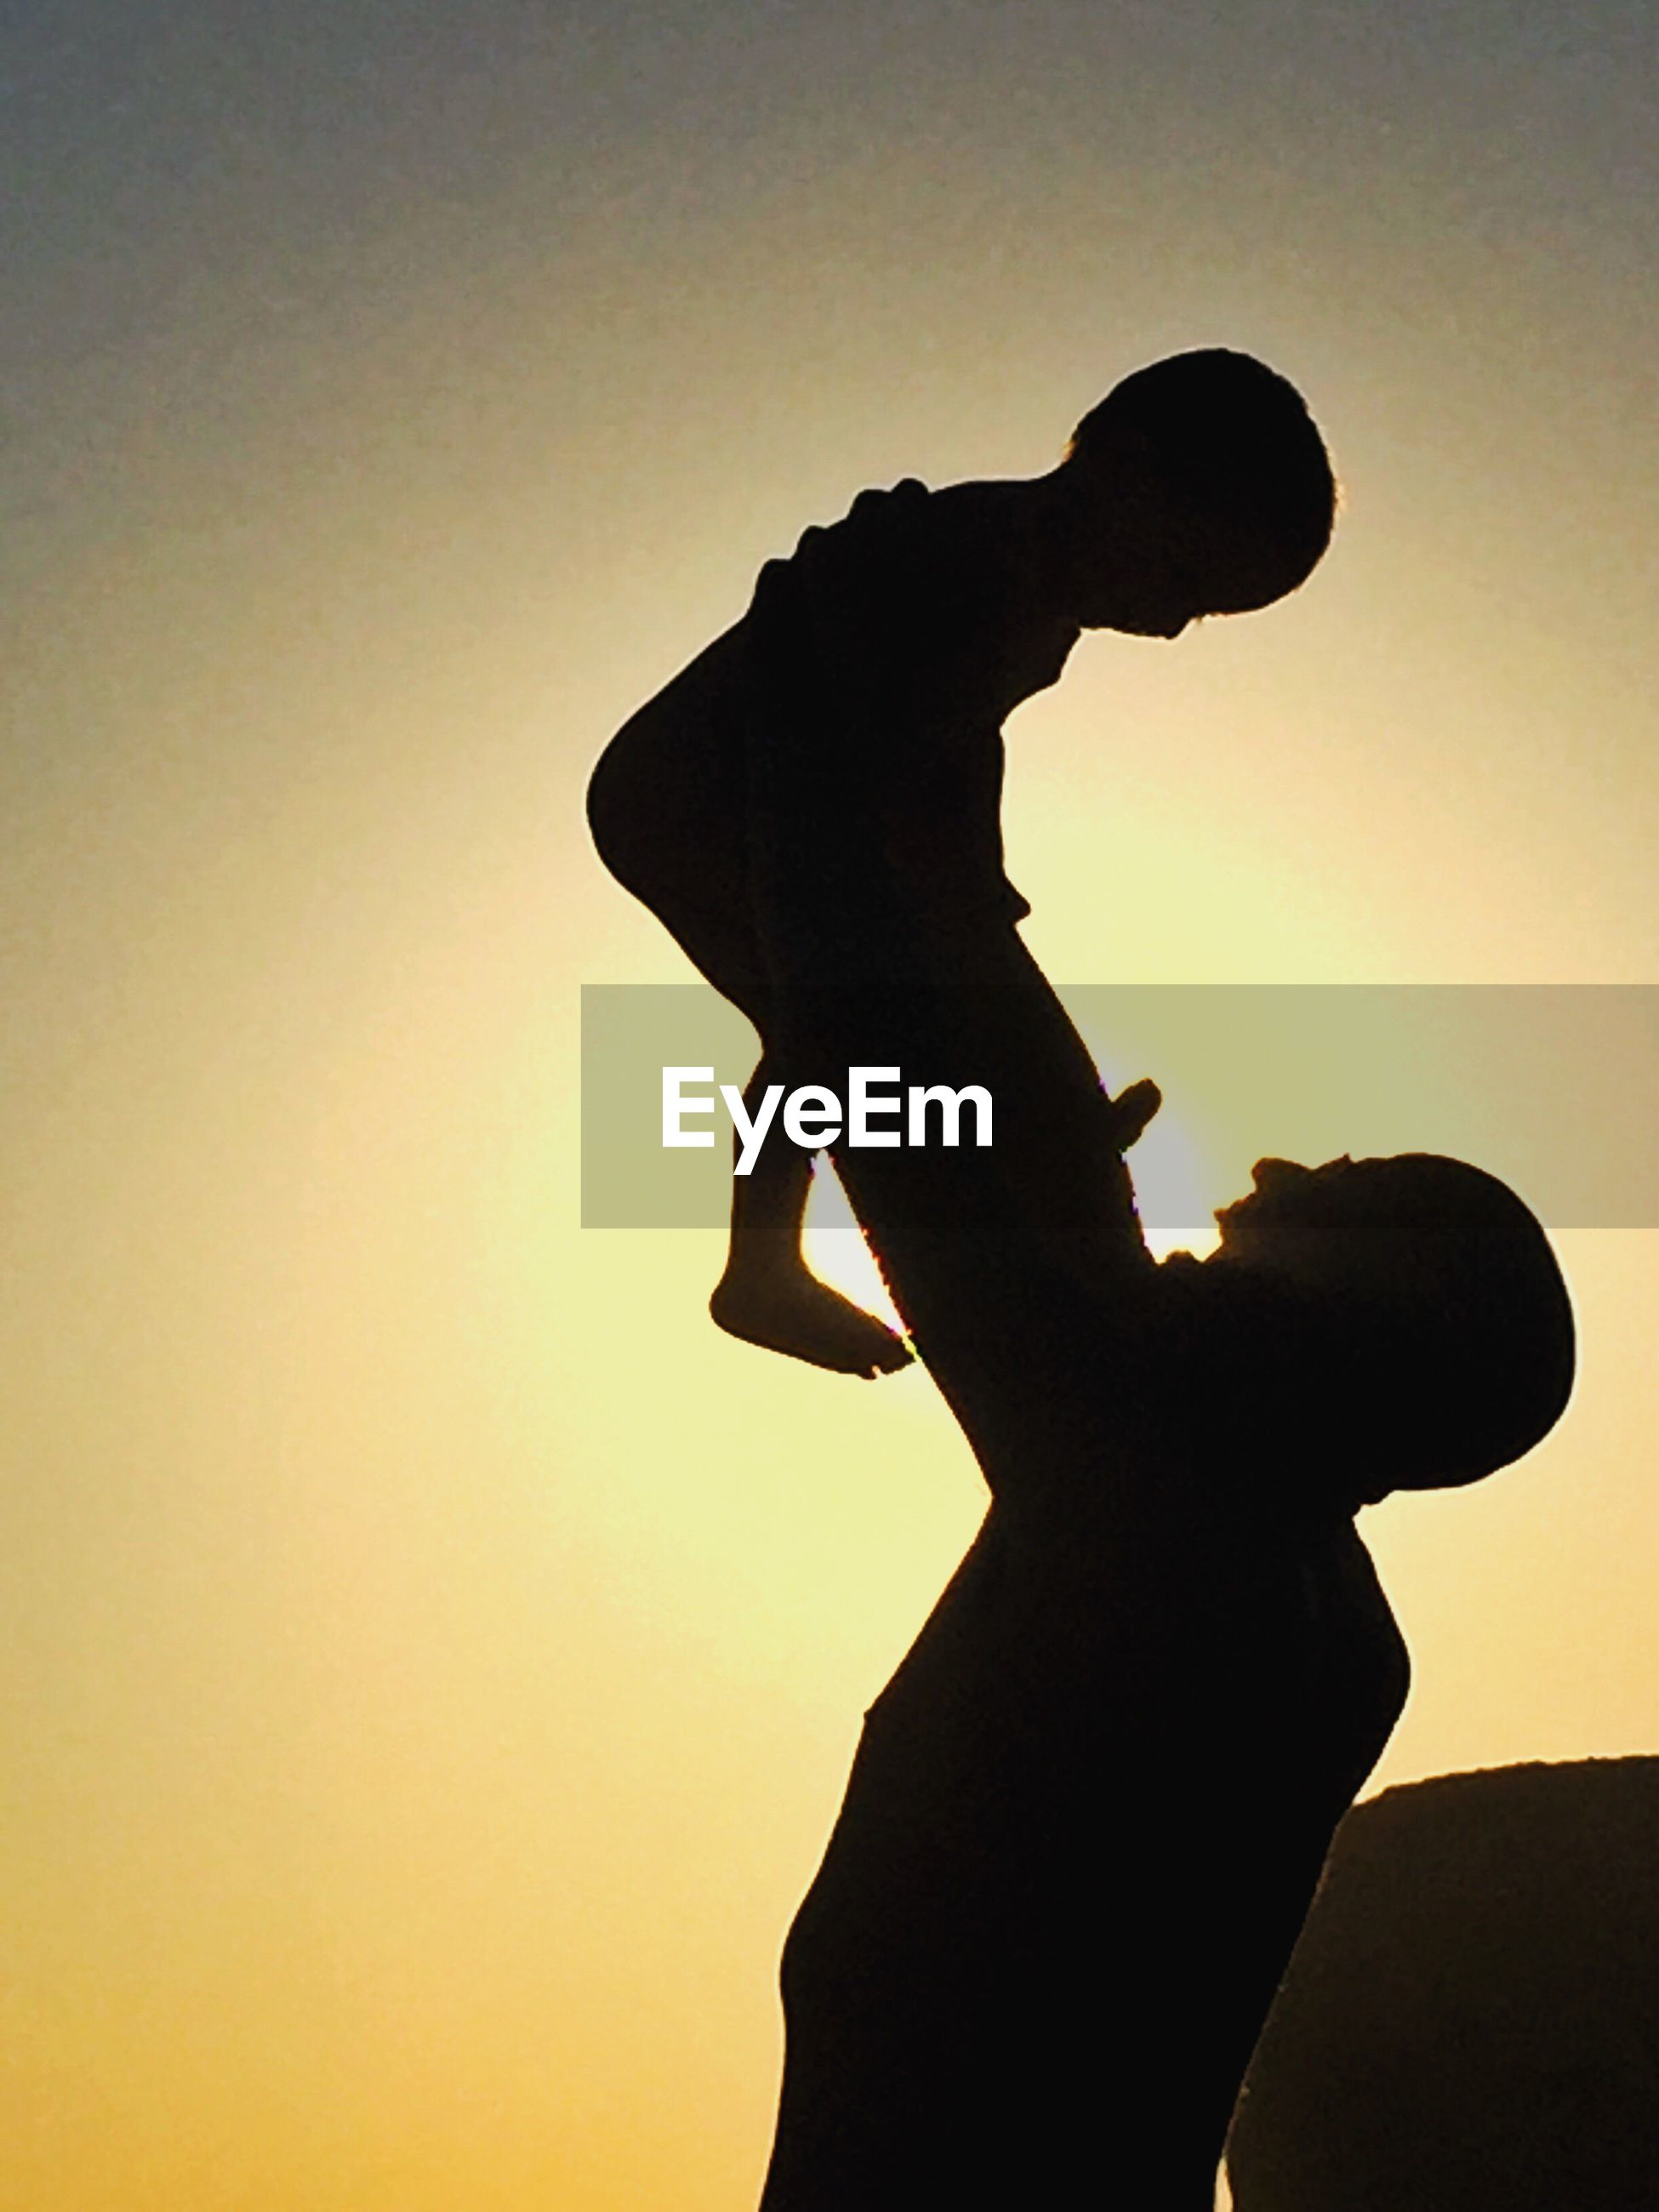 Silhouette father holding baby against sky during sunset